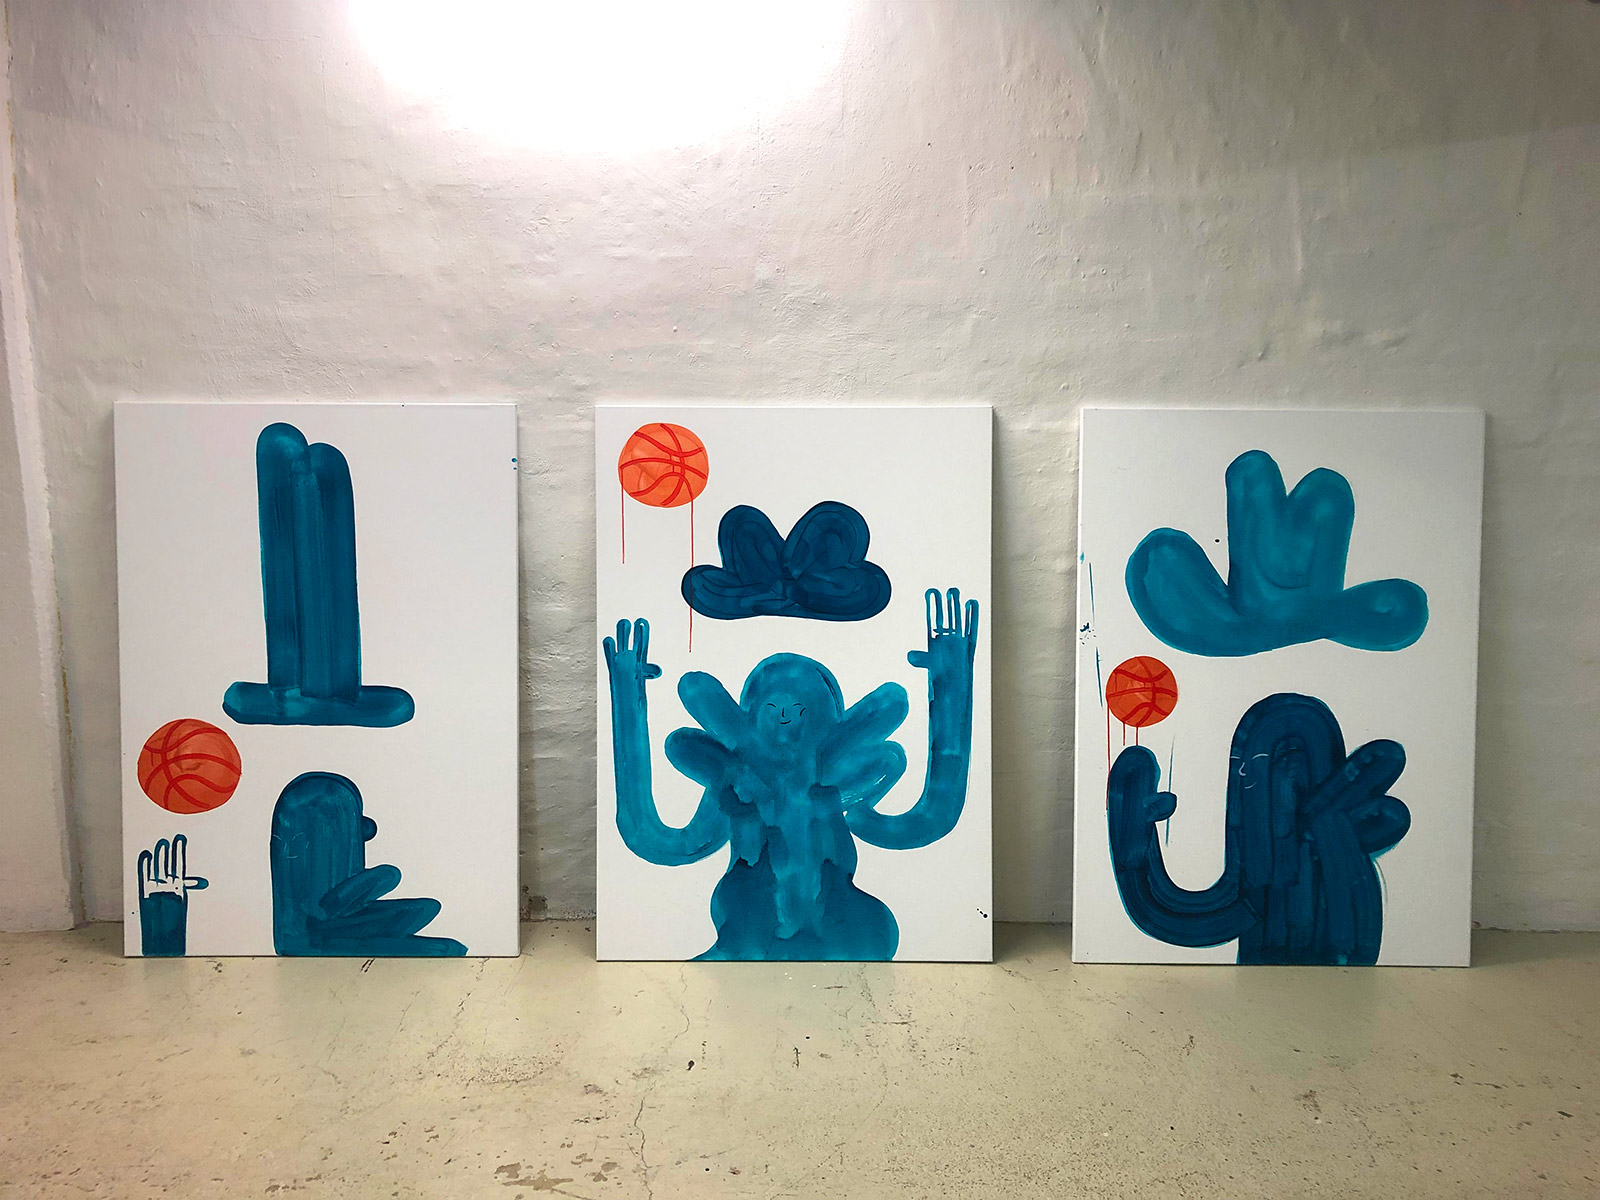 paintings, family-friendly, graphical, illustrative, minimalistic, pop, bodies, cartoons, humor, people, sport, orange, turquoise, white, acrylic, flax-canvas, amusing, contemporary-art, cute, danish, decorative, design, games, hats, interior, interior-design, modern, modern-art, nordic, scandinavien, Buy original high quality art. Paintings, drawings, limited edition prints & posters by talented artists.